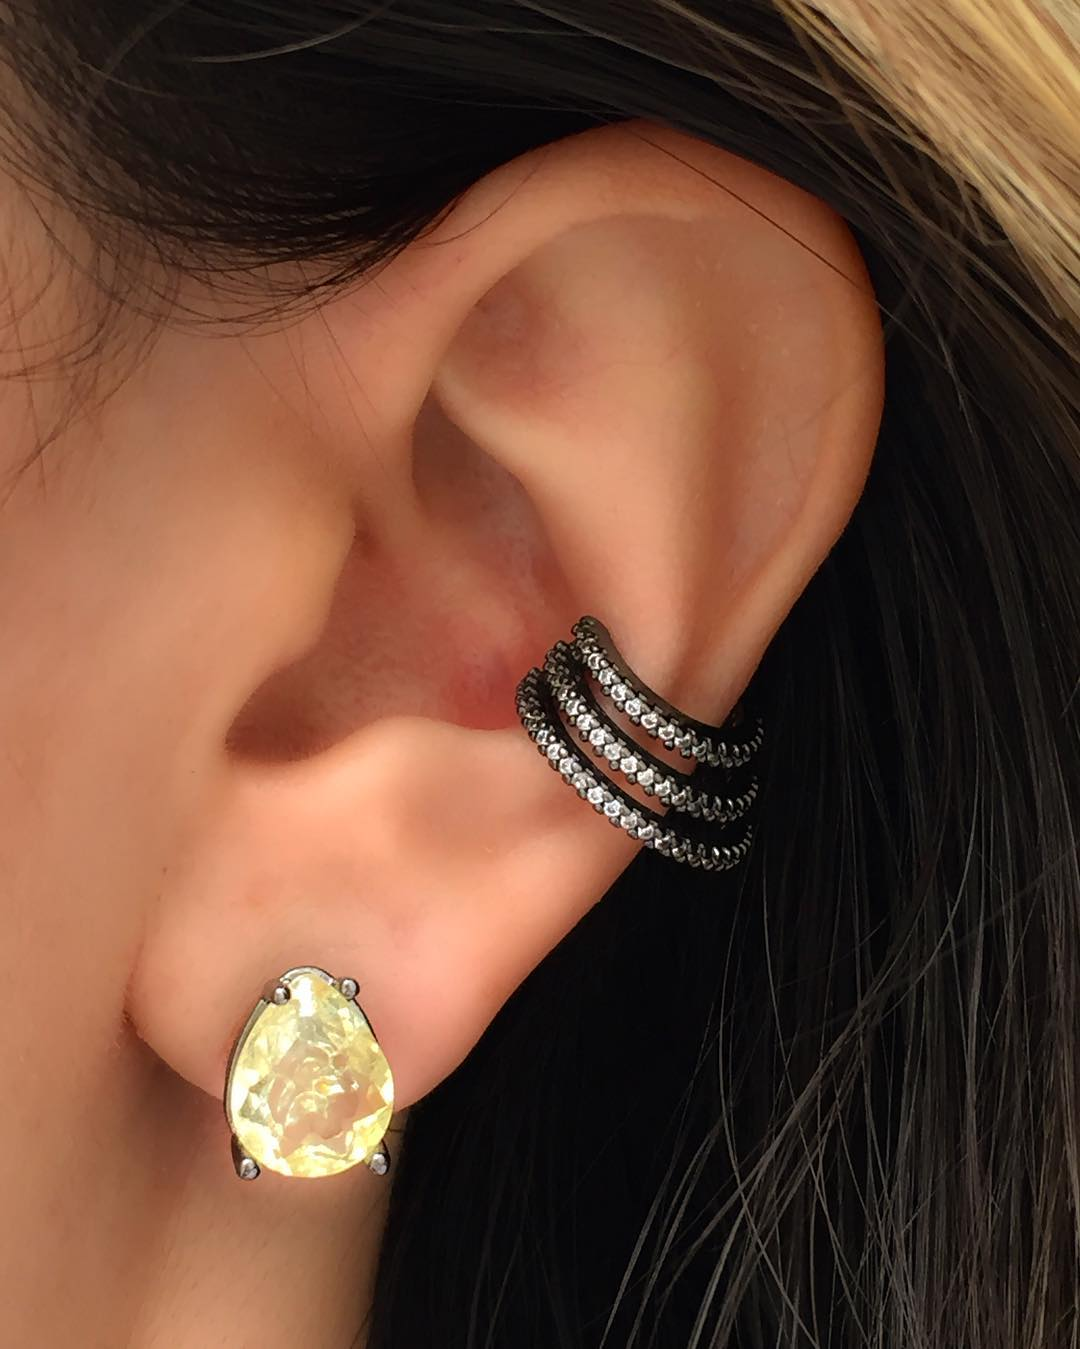 Piercing Triple Conch